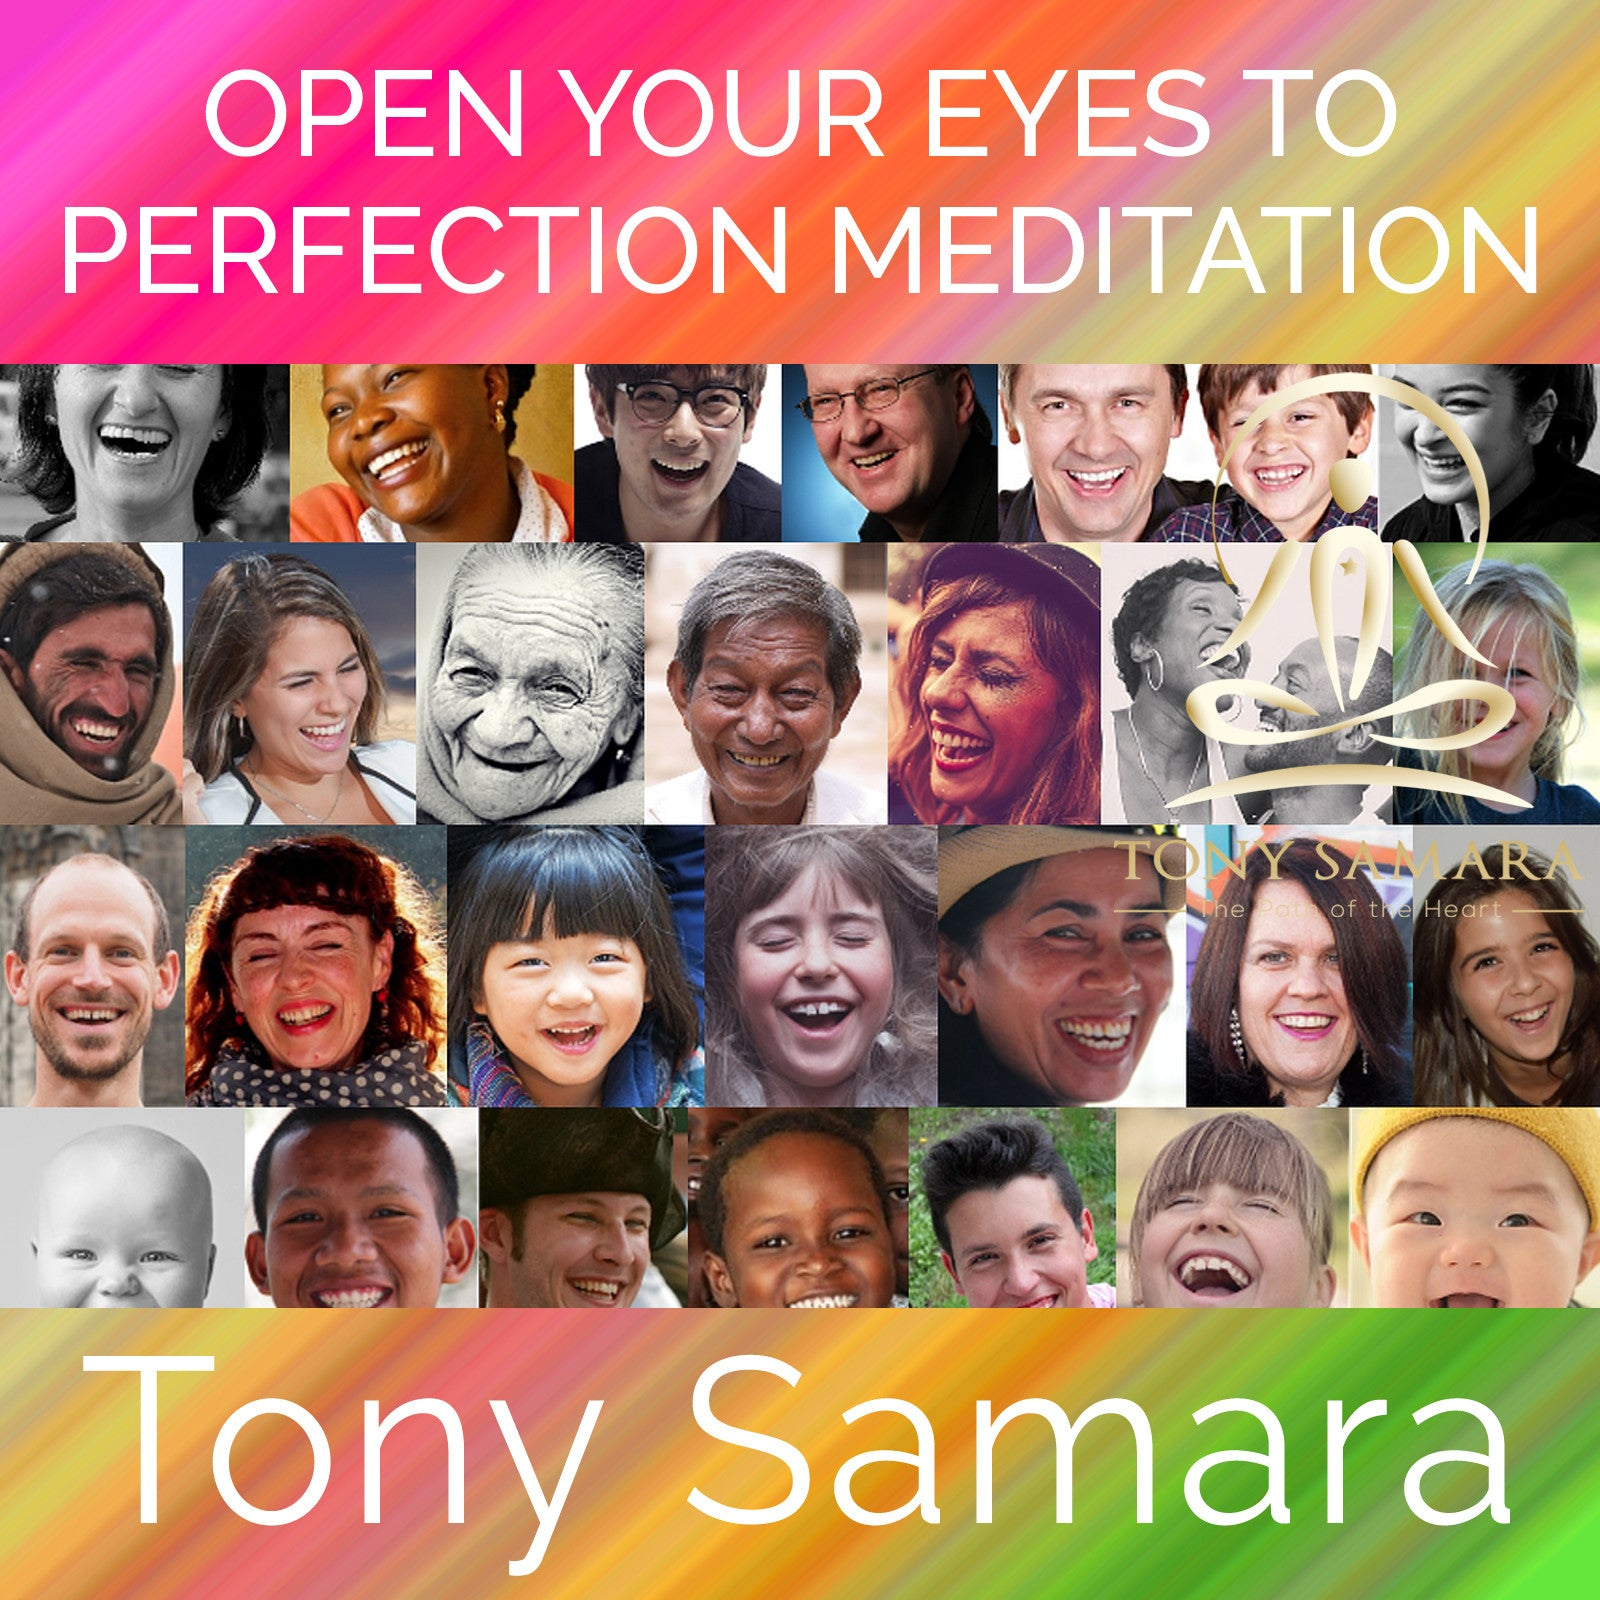 Open Your Eyes to Perfection Meditation (MP3 Audio Download) - Tony Samara Meditation